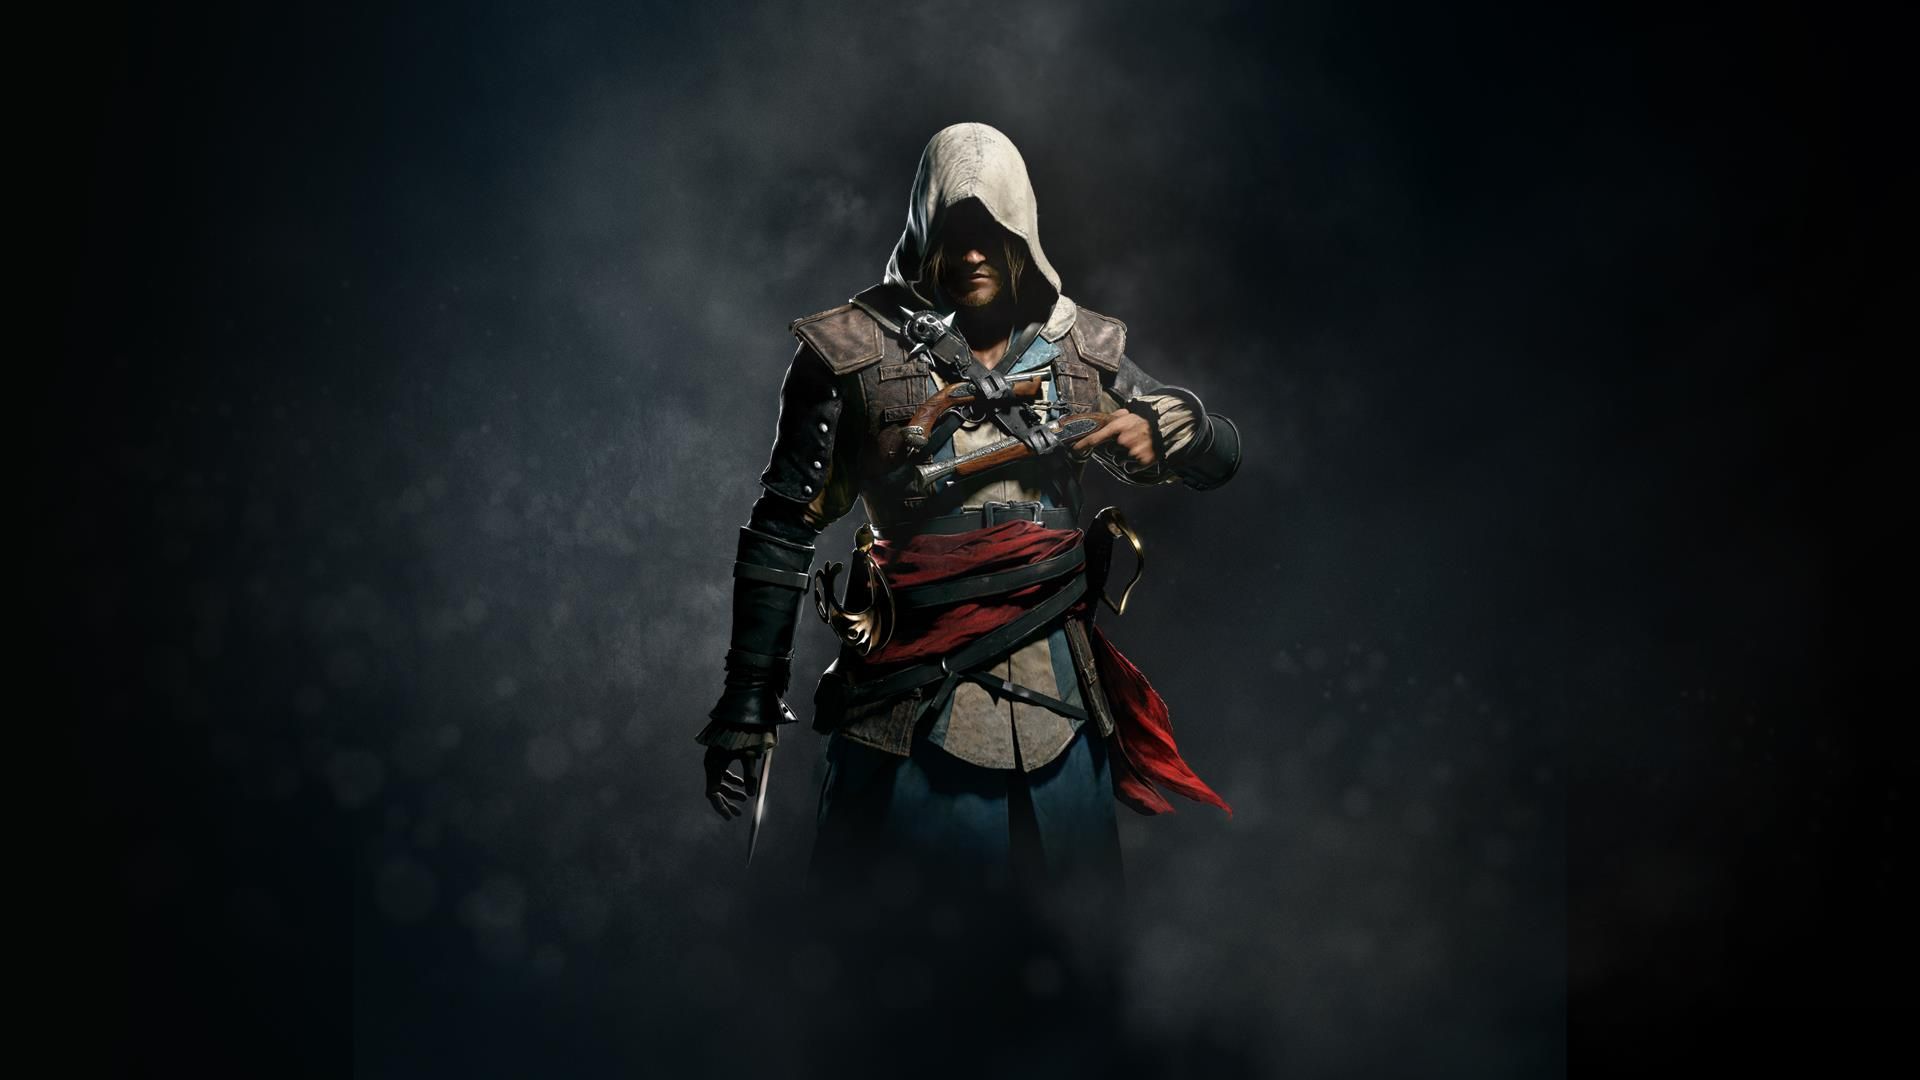 Killer Killer in Assassin's Creed IV: Black Flag (Xbox One)